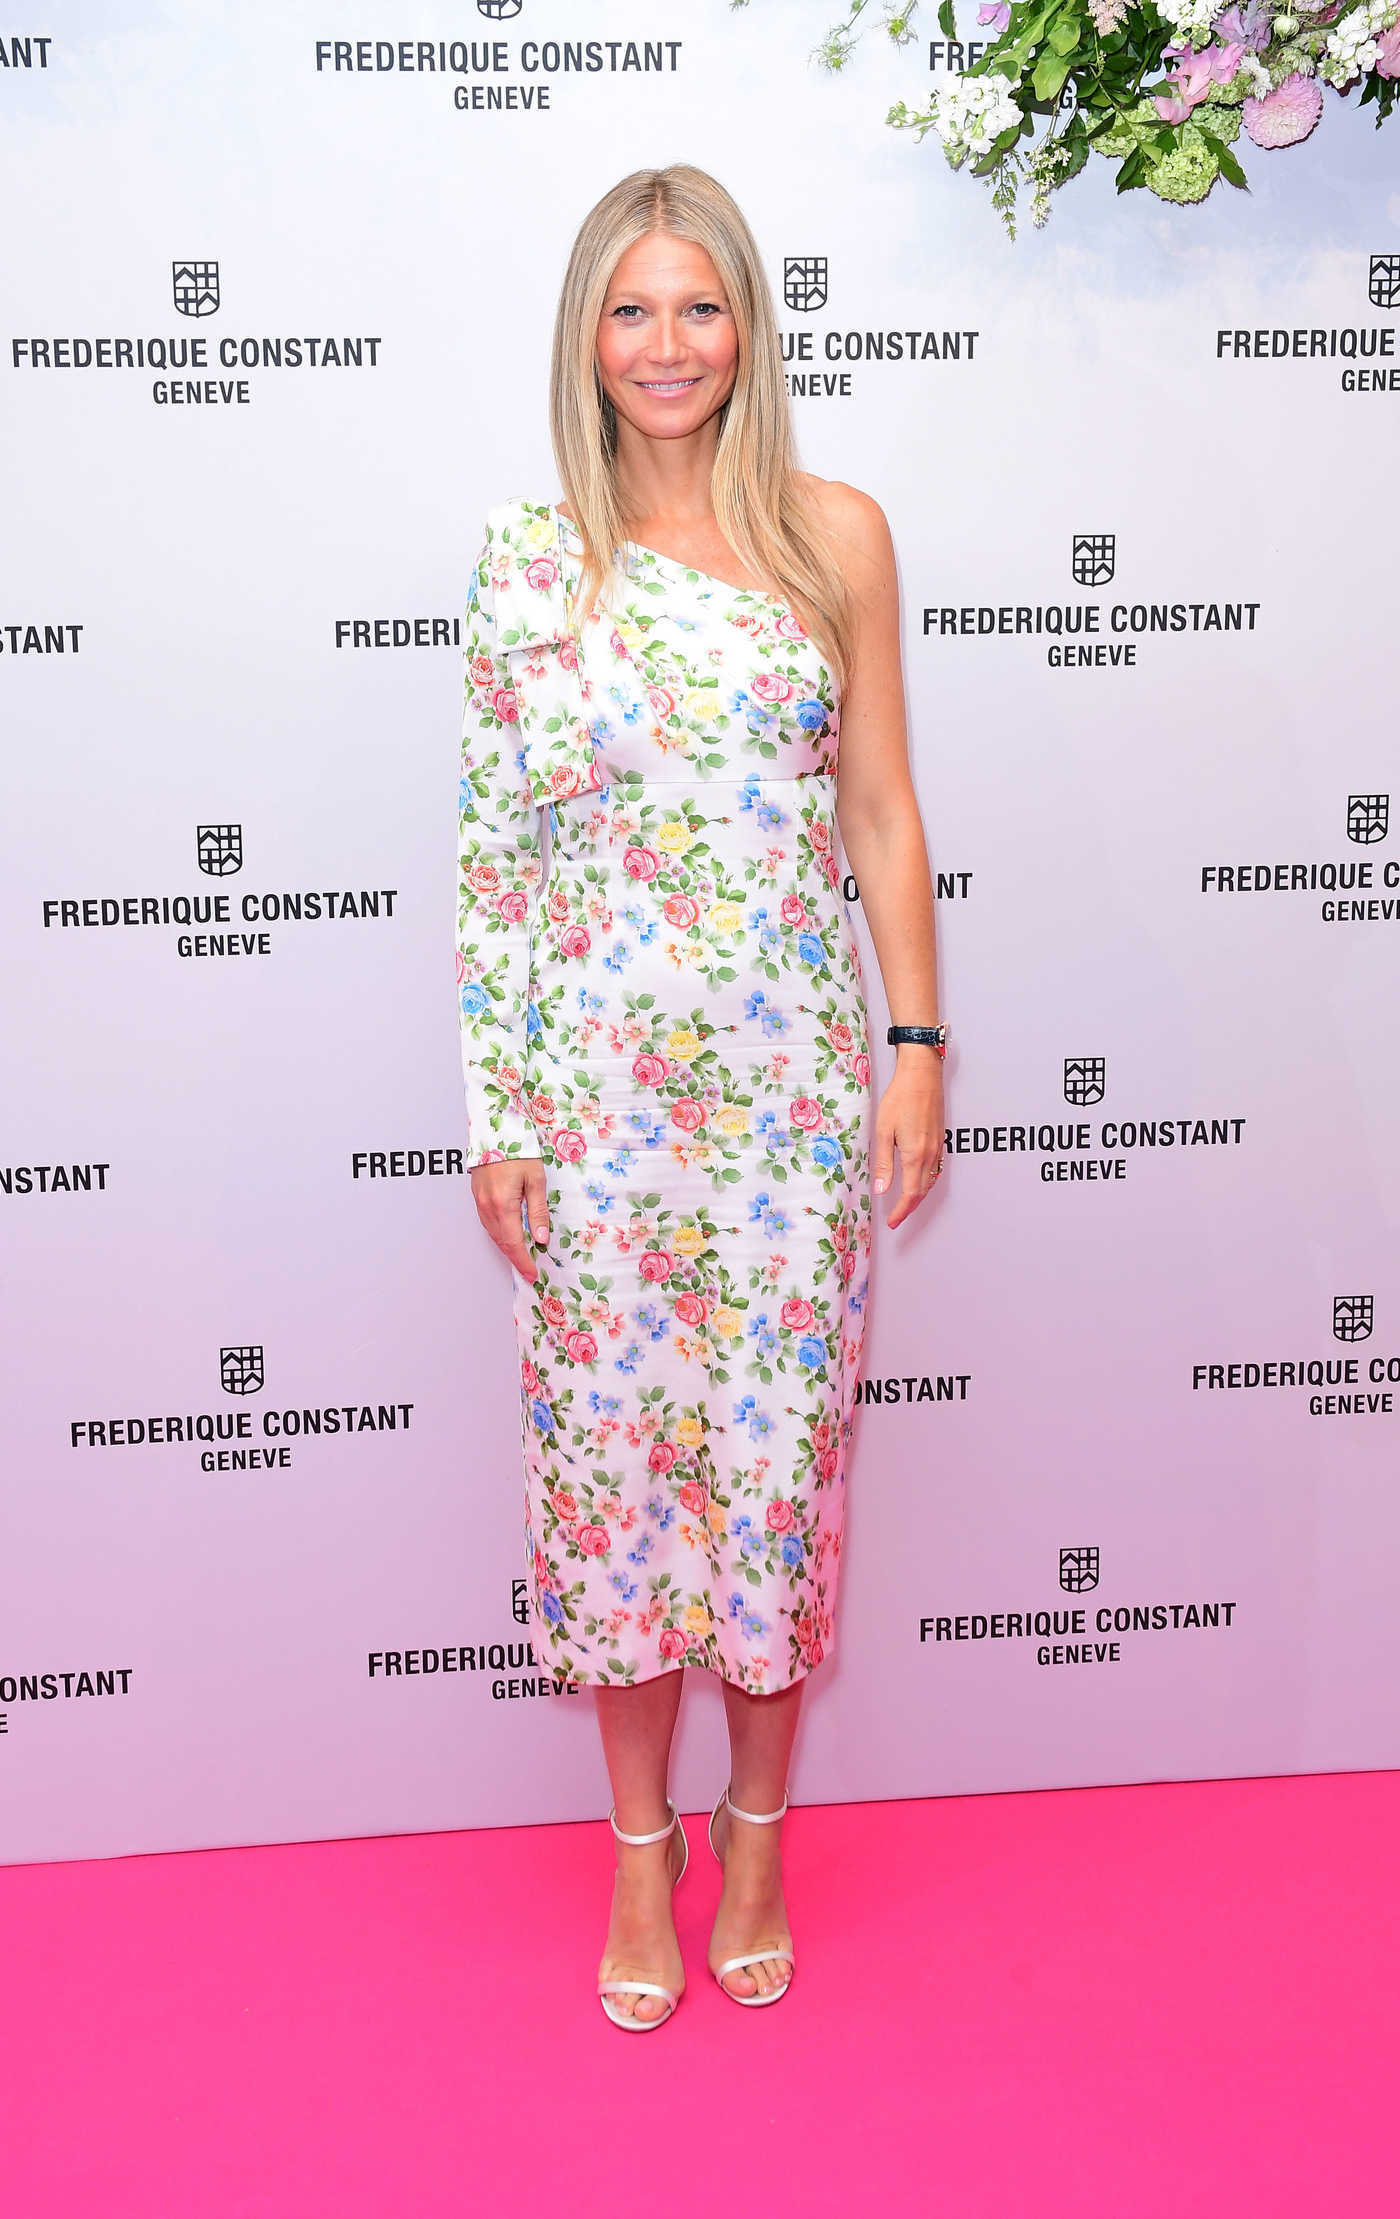 Gwyneth Paltrow Attends the New Ladies Automatic Collection Launch in London 06/21/2018